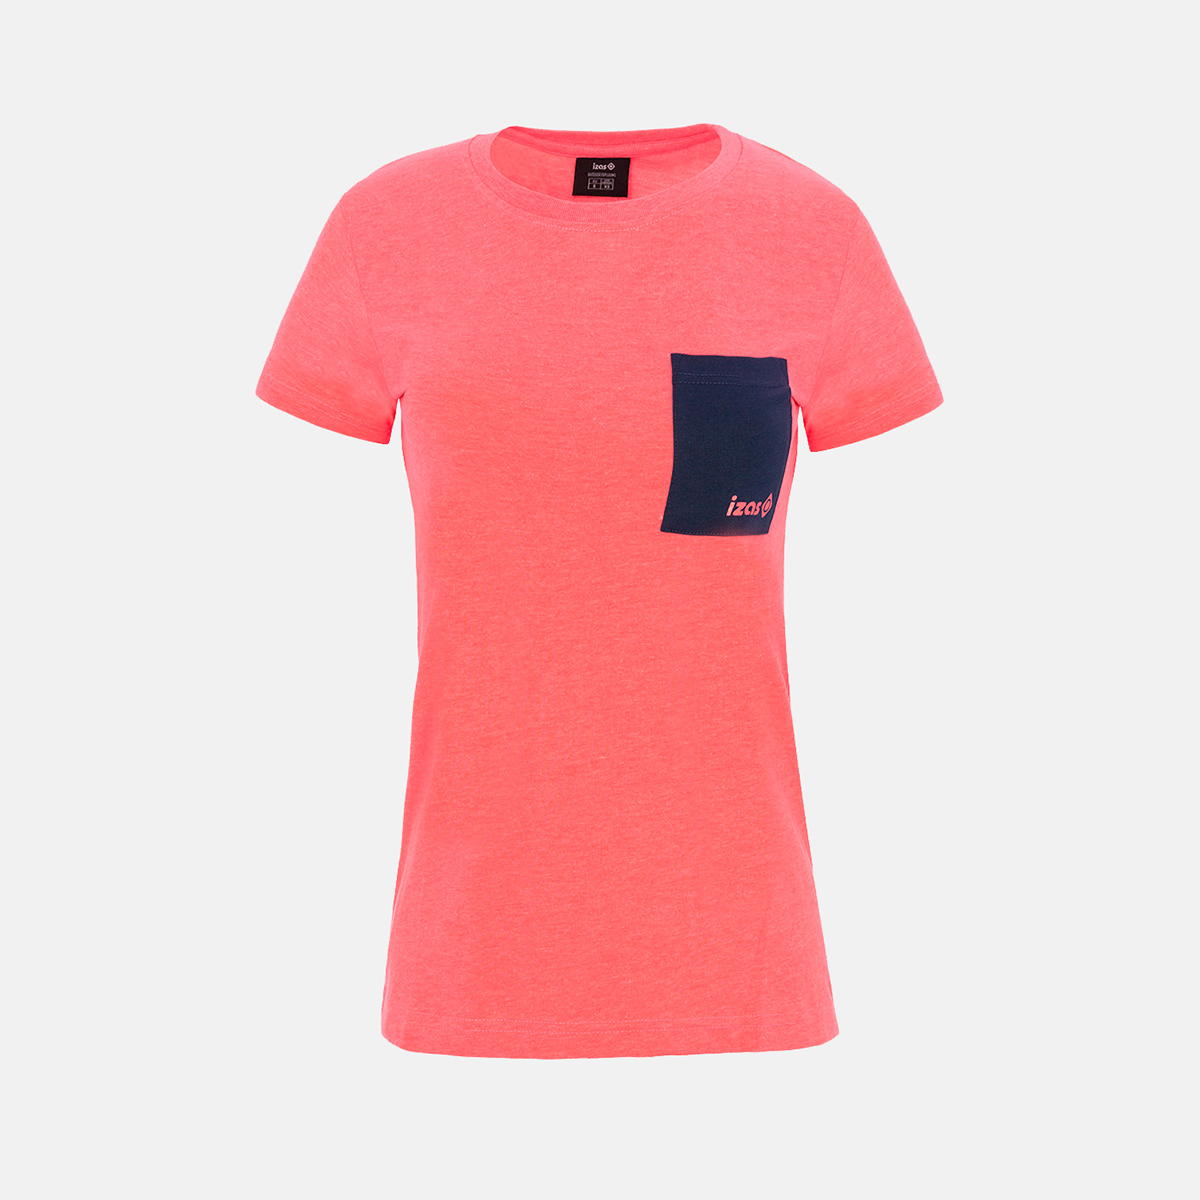 WOMAN'S DAKOTA SHORT SLEEVE T SHIRT ORANGE